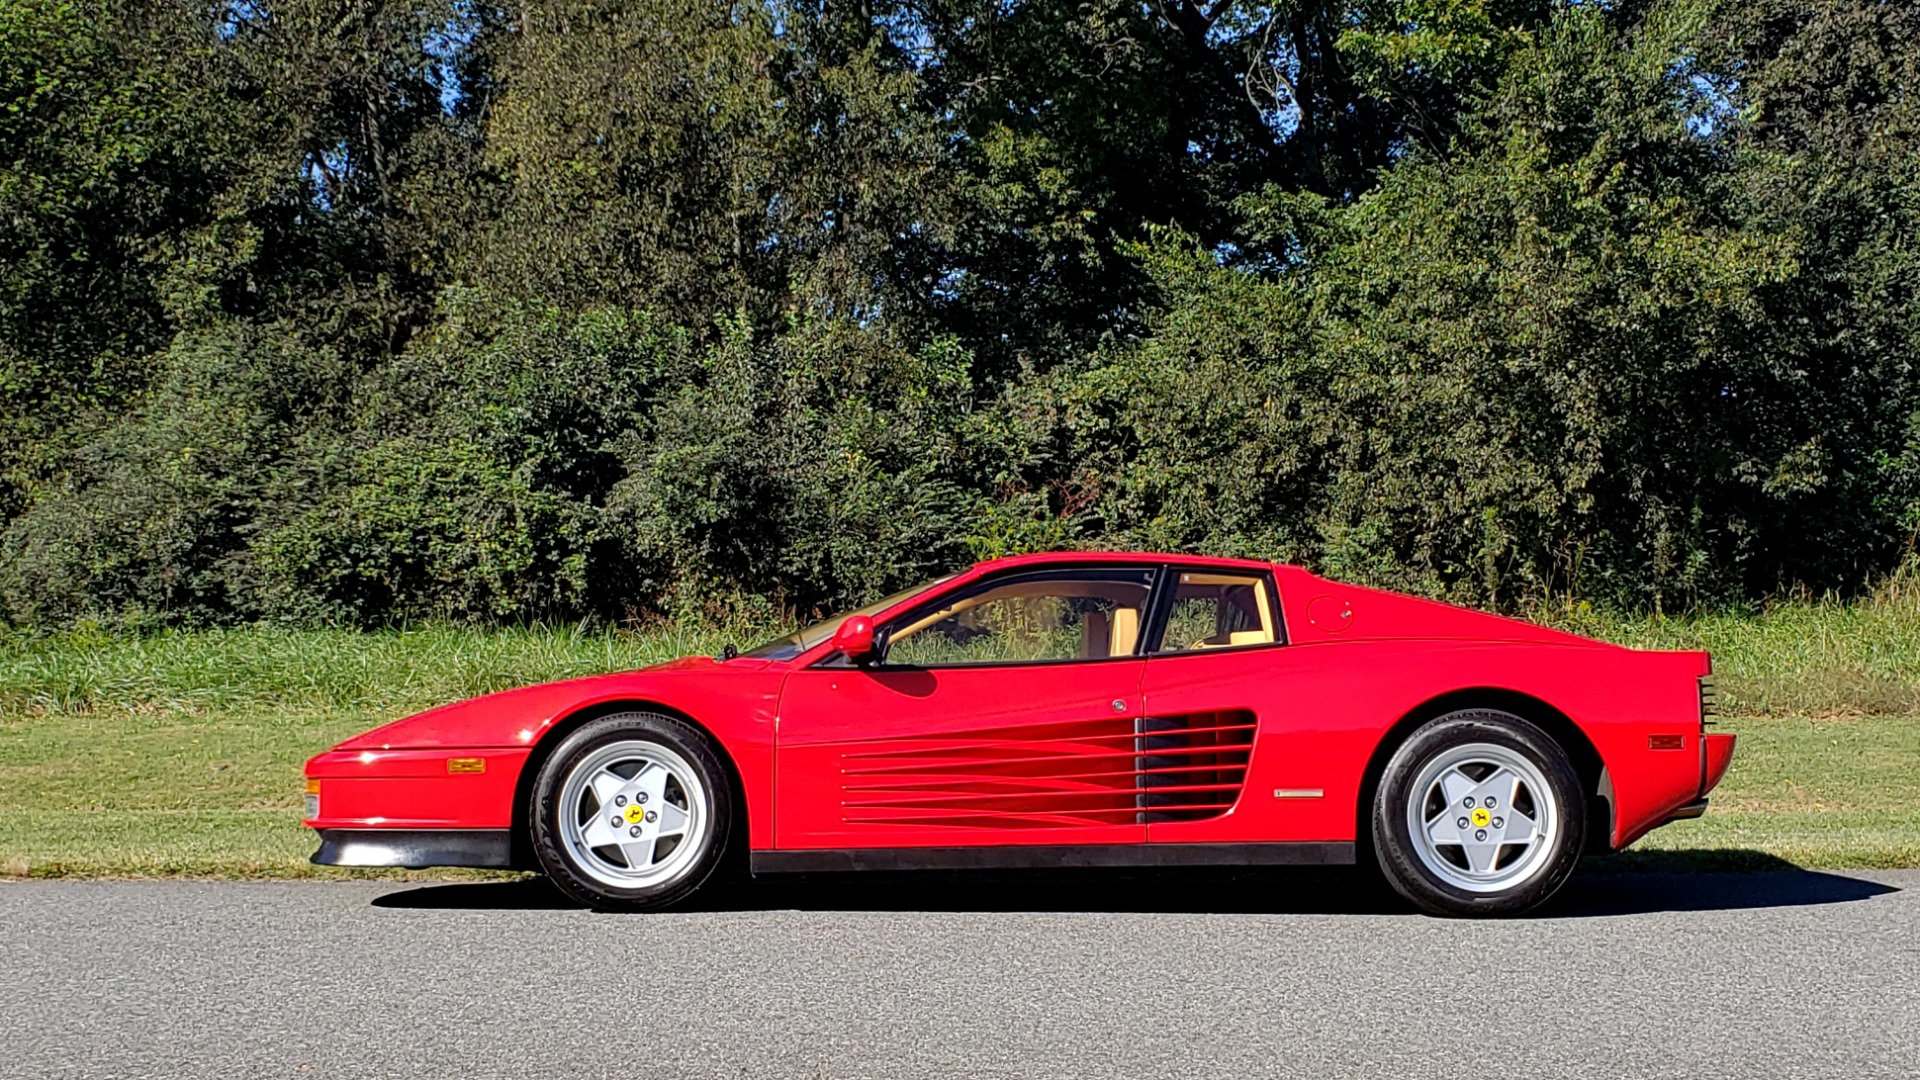 Used 1988 Ferrari TESTAROSSA COUPE / 4.9L FLAT-12 / 5-SPEED MANUAL / LOW MILES SUPER CLEAN for sale $128,999 at Formula Imports in Charlotte NC 28227 3